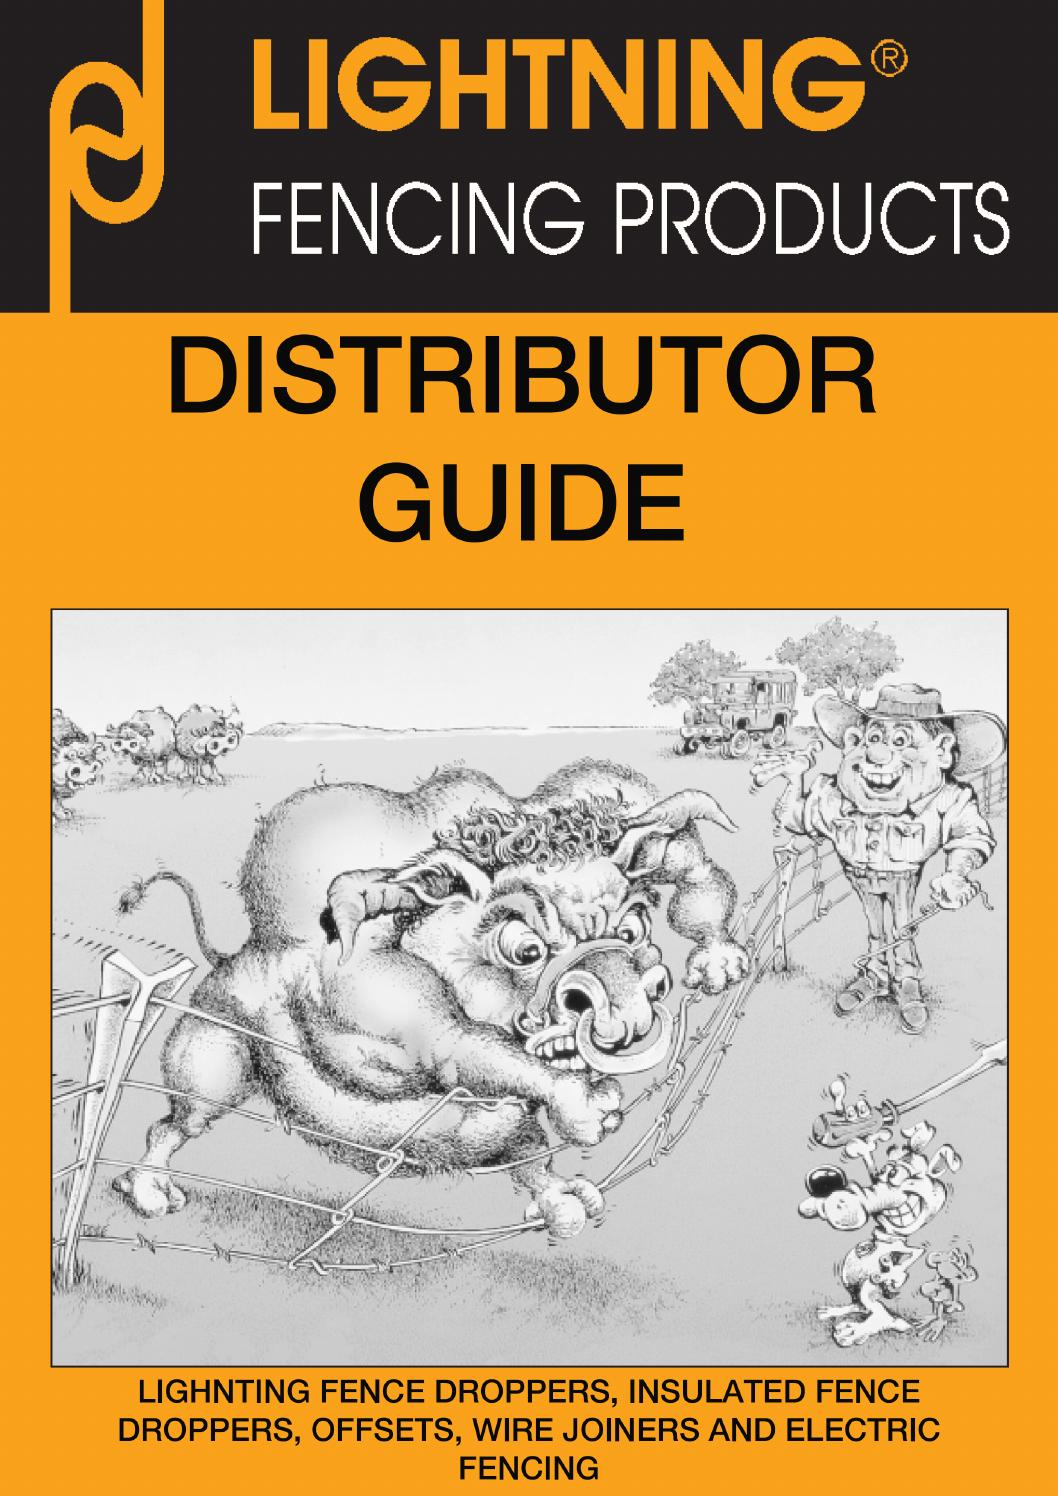 Lightning Fencing Products Distributor Guide By Lighting Fence